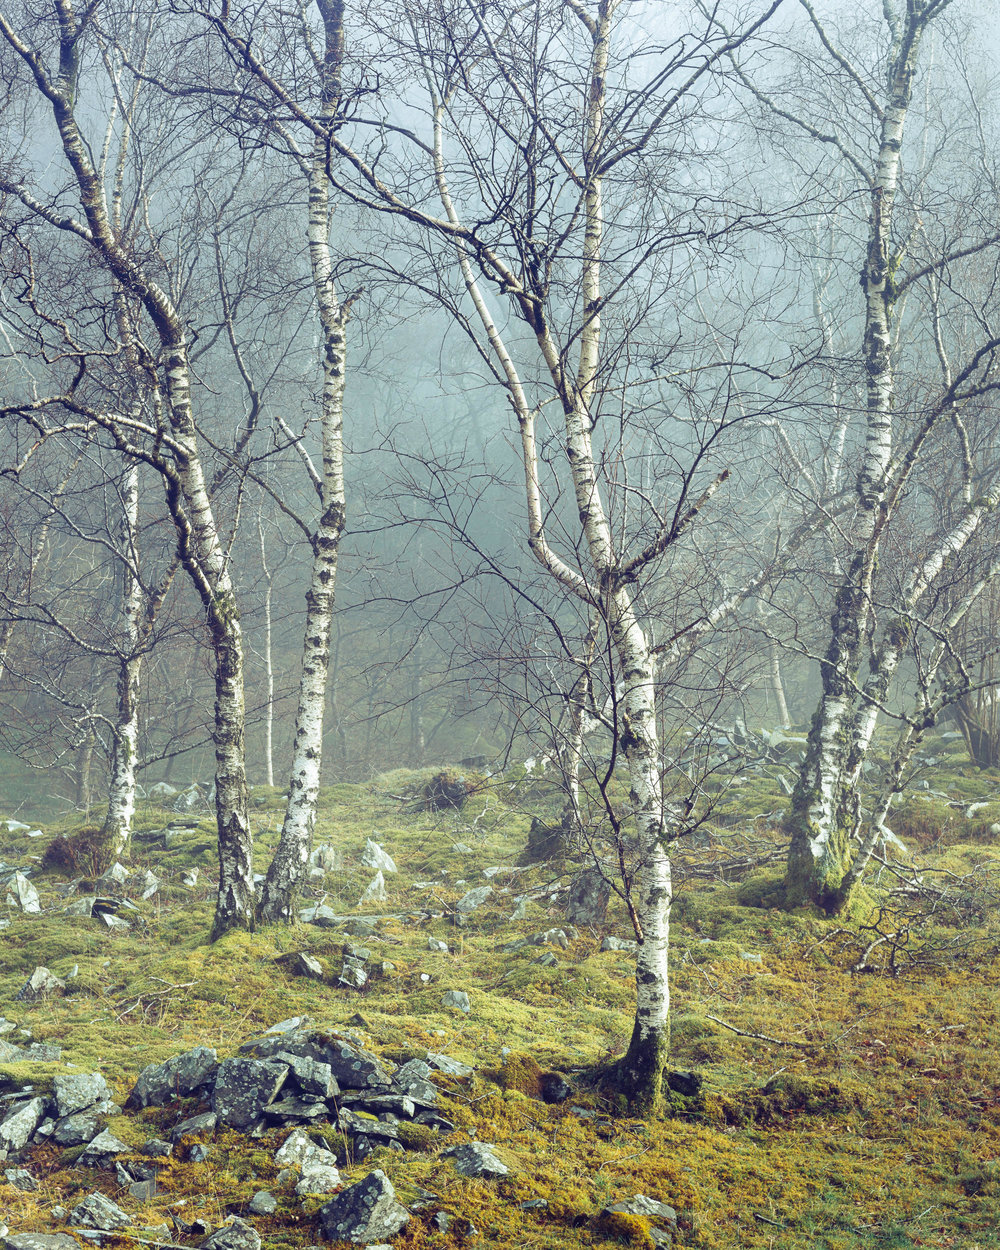 Scenes from the Wasteland - Moss Rigg